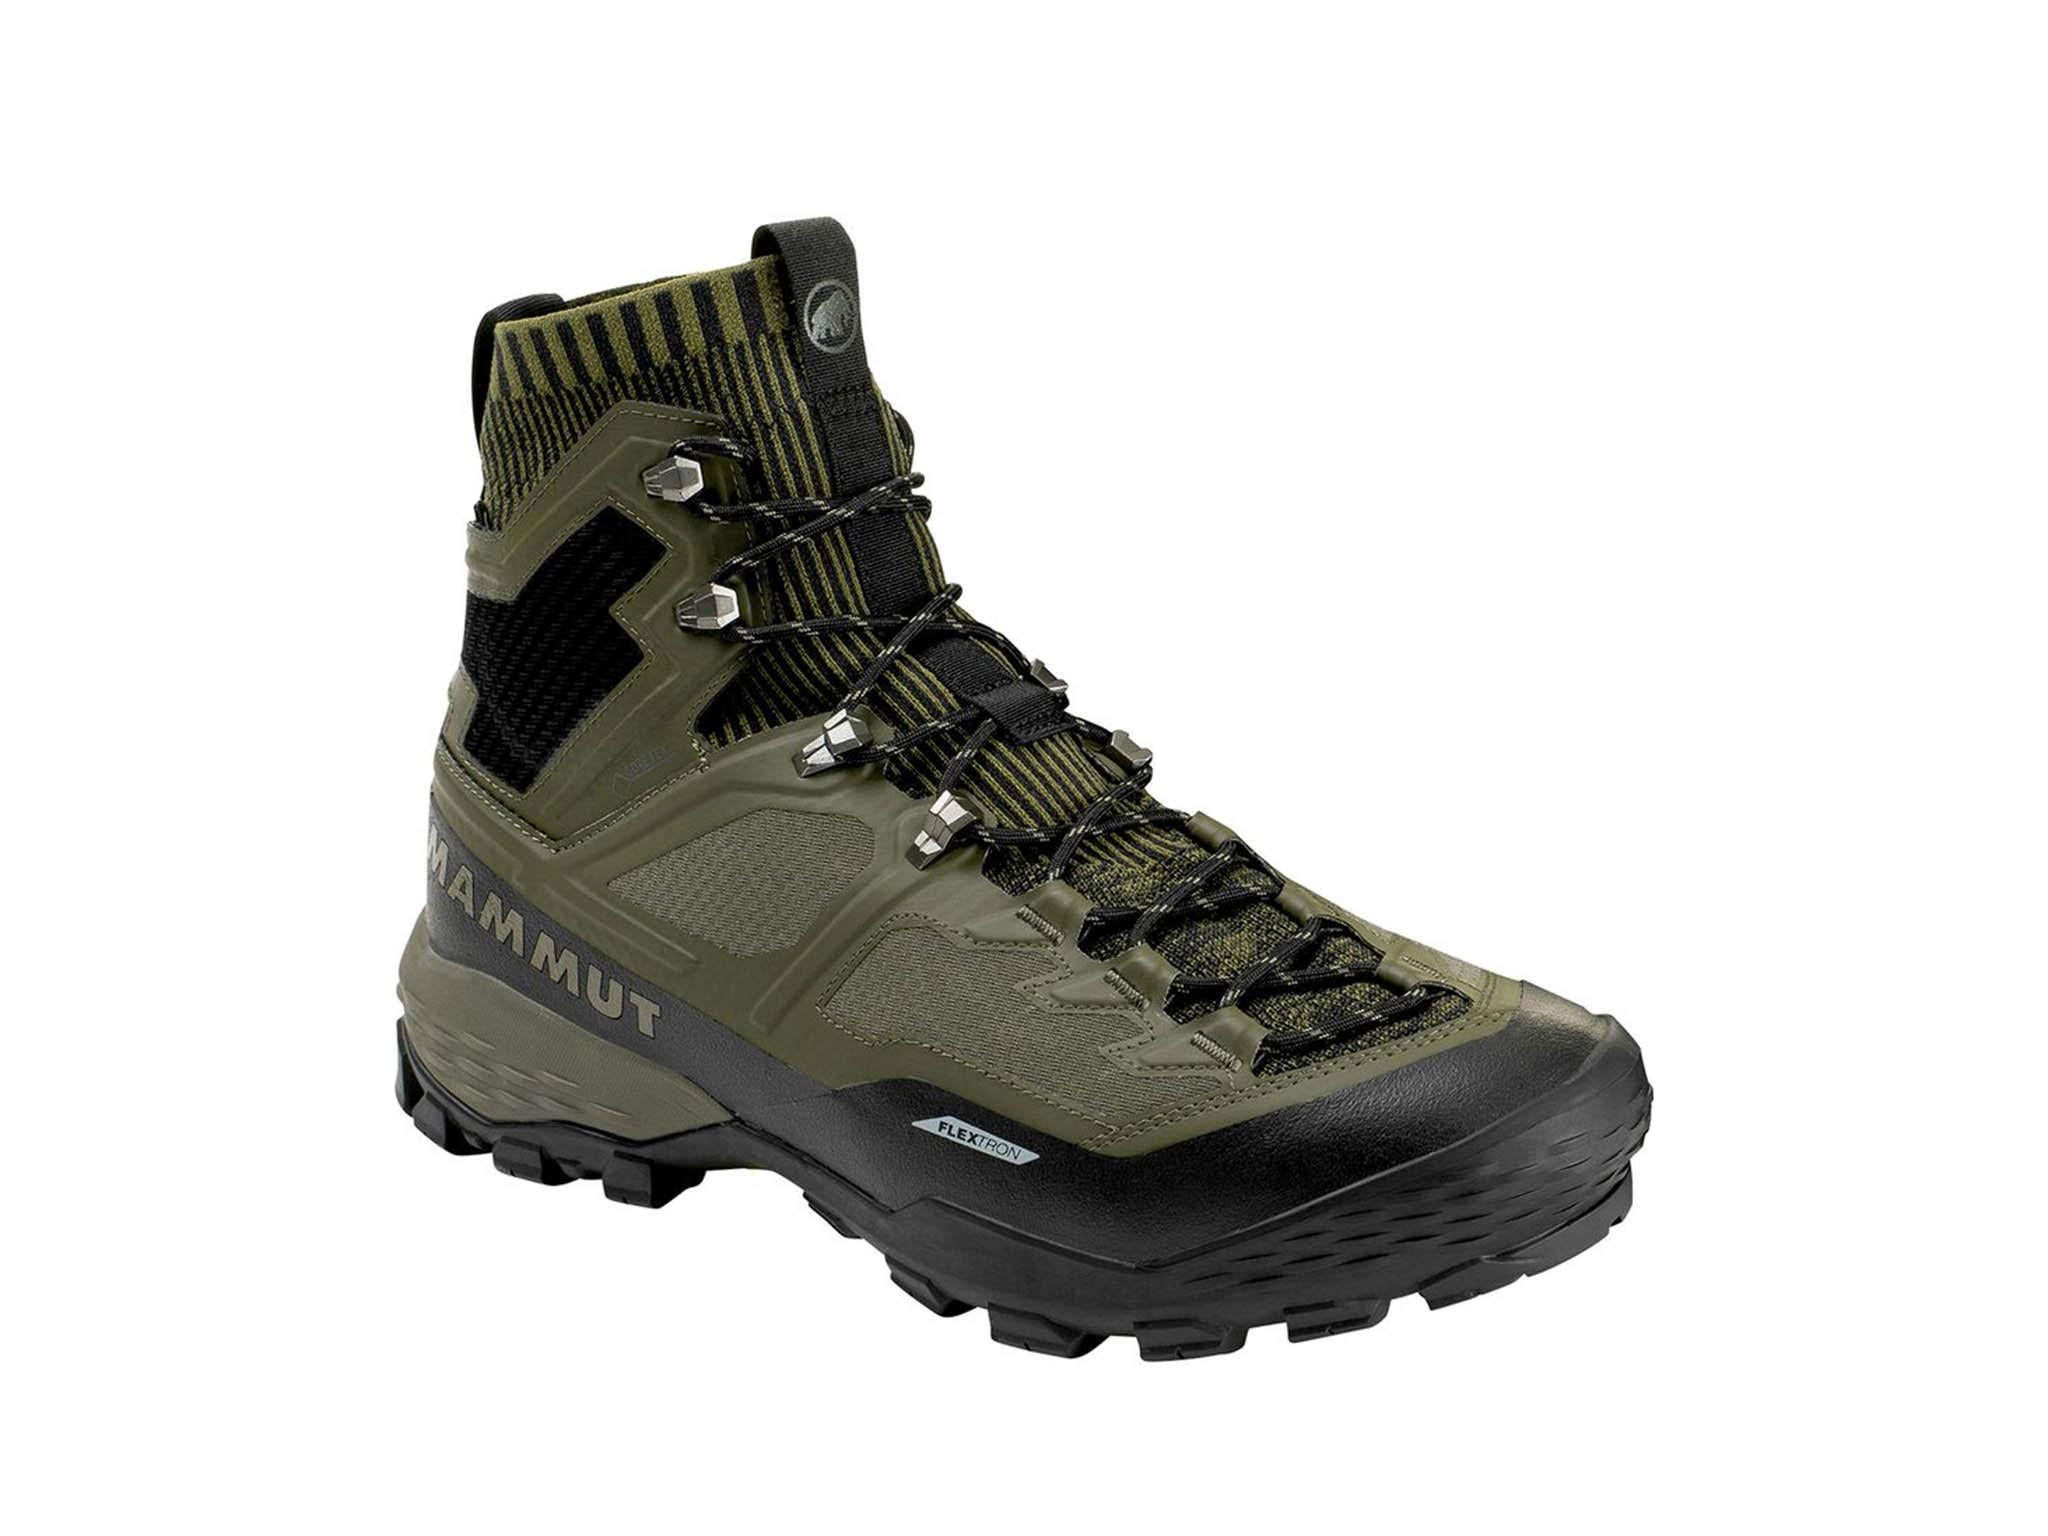 3b2fe7c7ac2 Best men's hiking boots and shoes